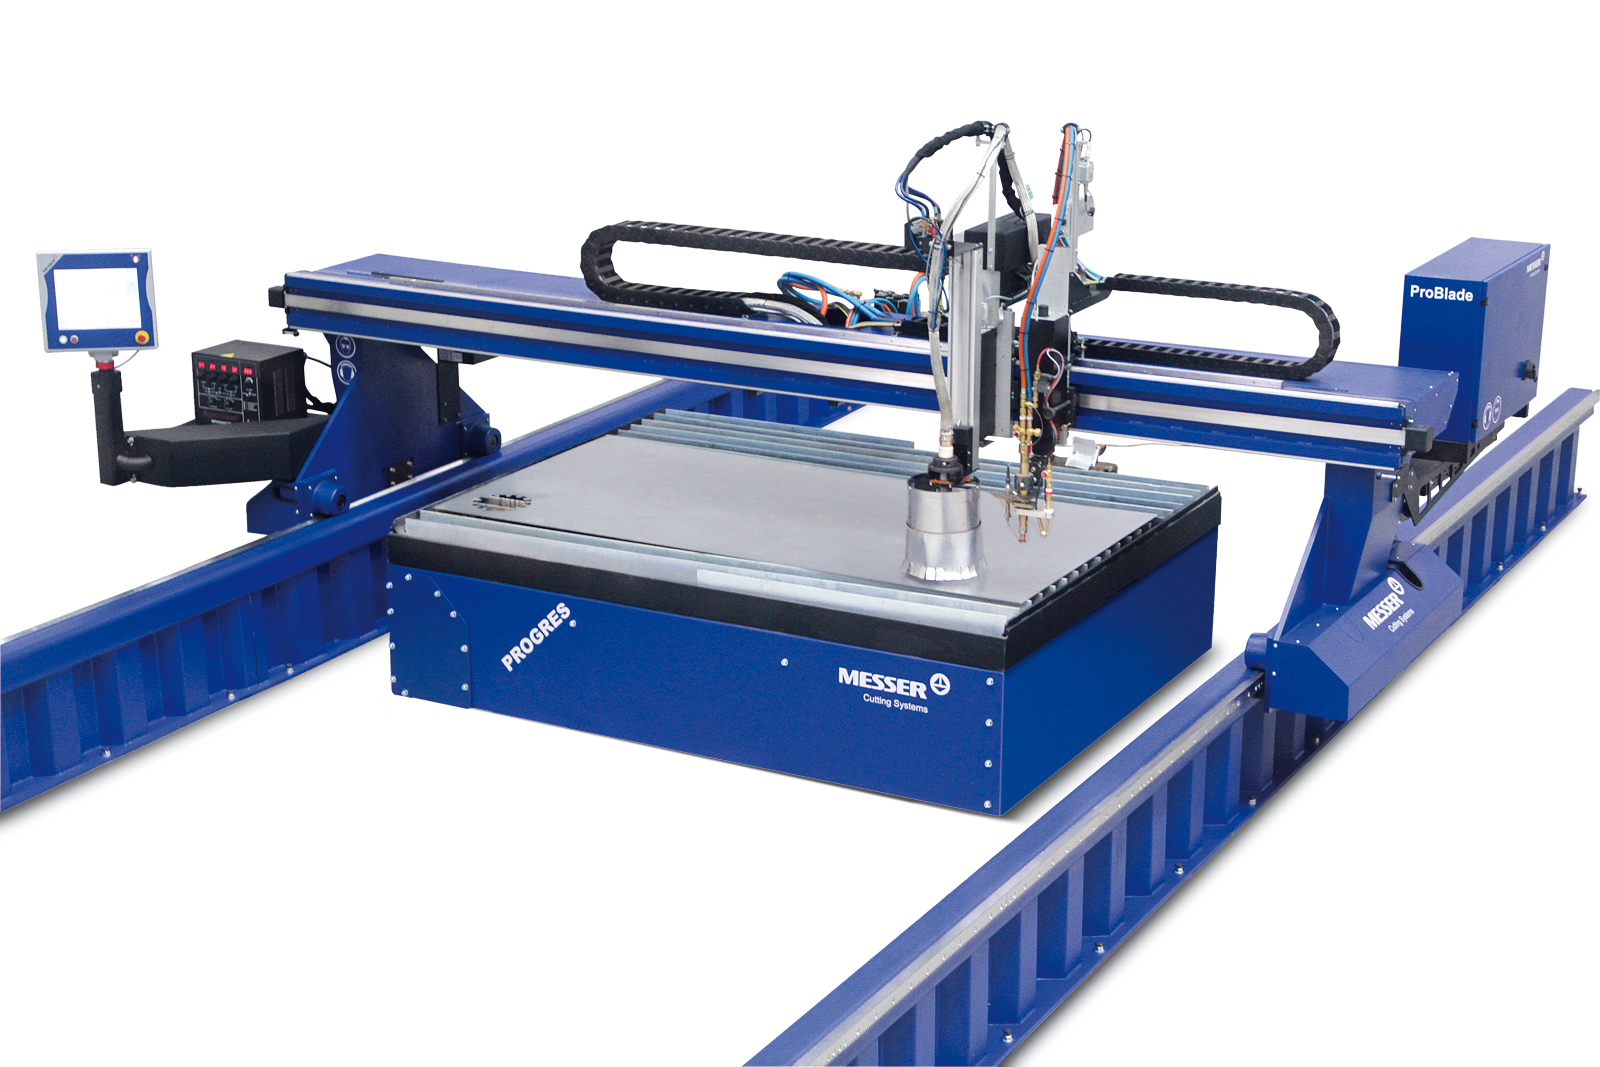 Messer Cutting Systems Launches Its First Global Machine